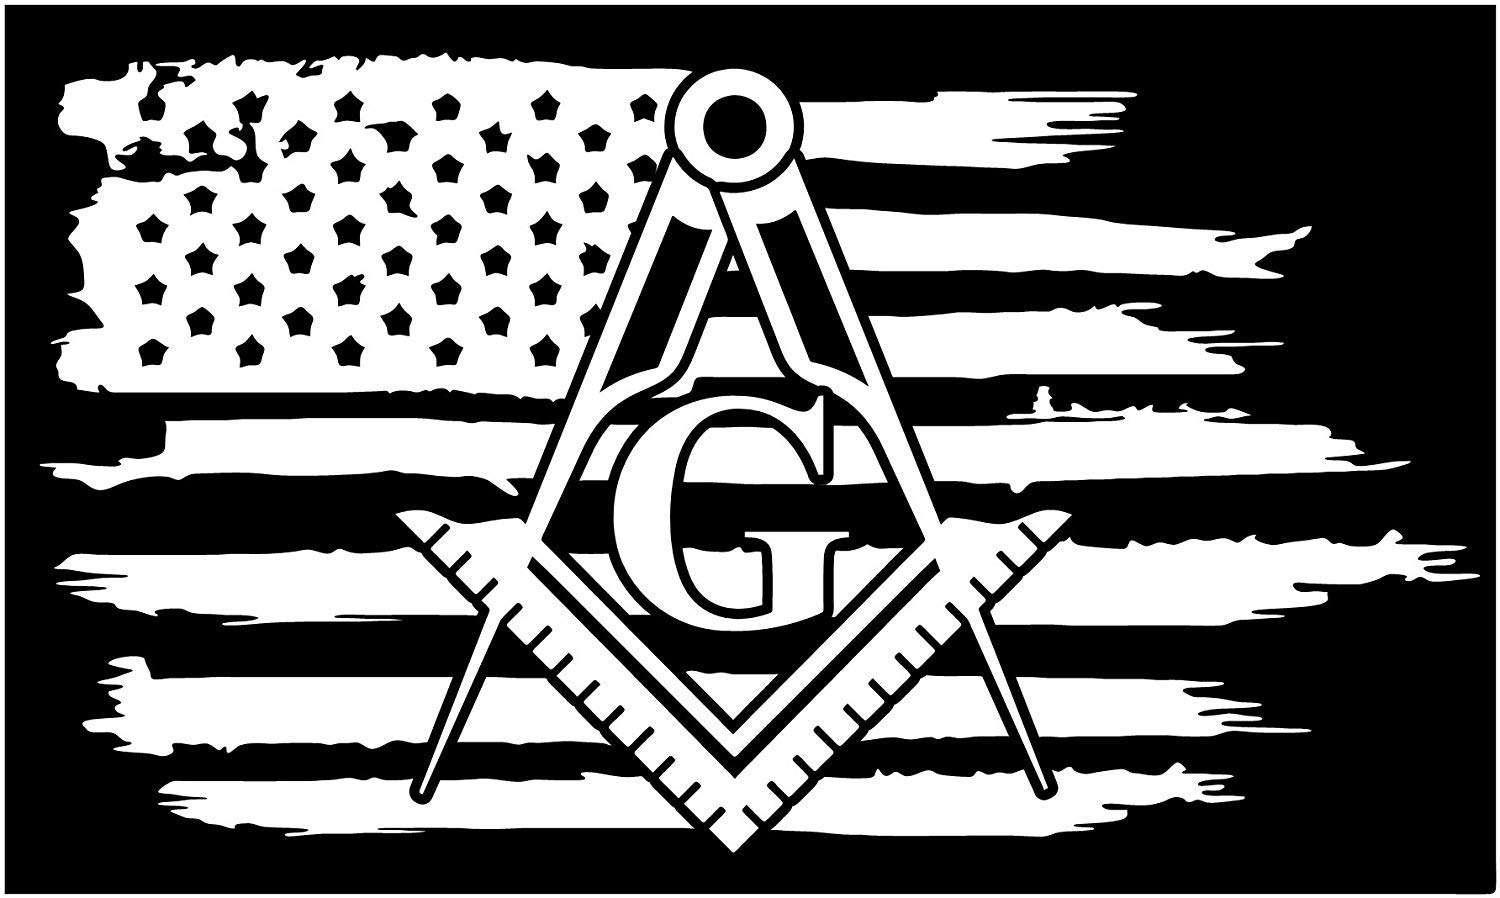 American flag with masonic clipart clip freeuse download Firehouse Graphics American Flag Mason Masonic Freemasons Vinyl die Cut  Sticker Decal Pledge of Allegiance clip freeuse download